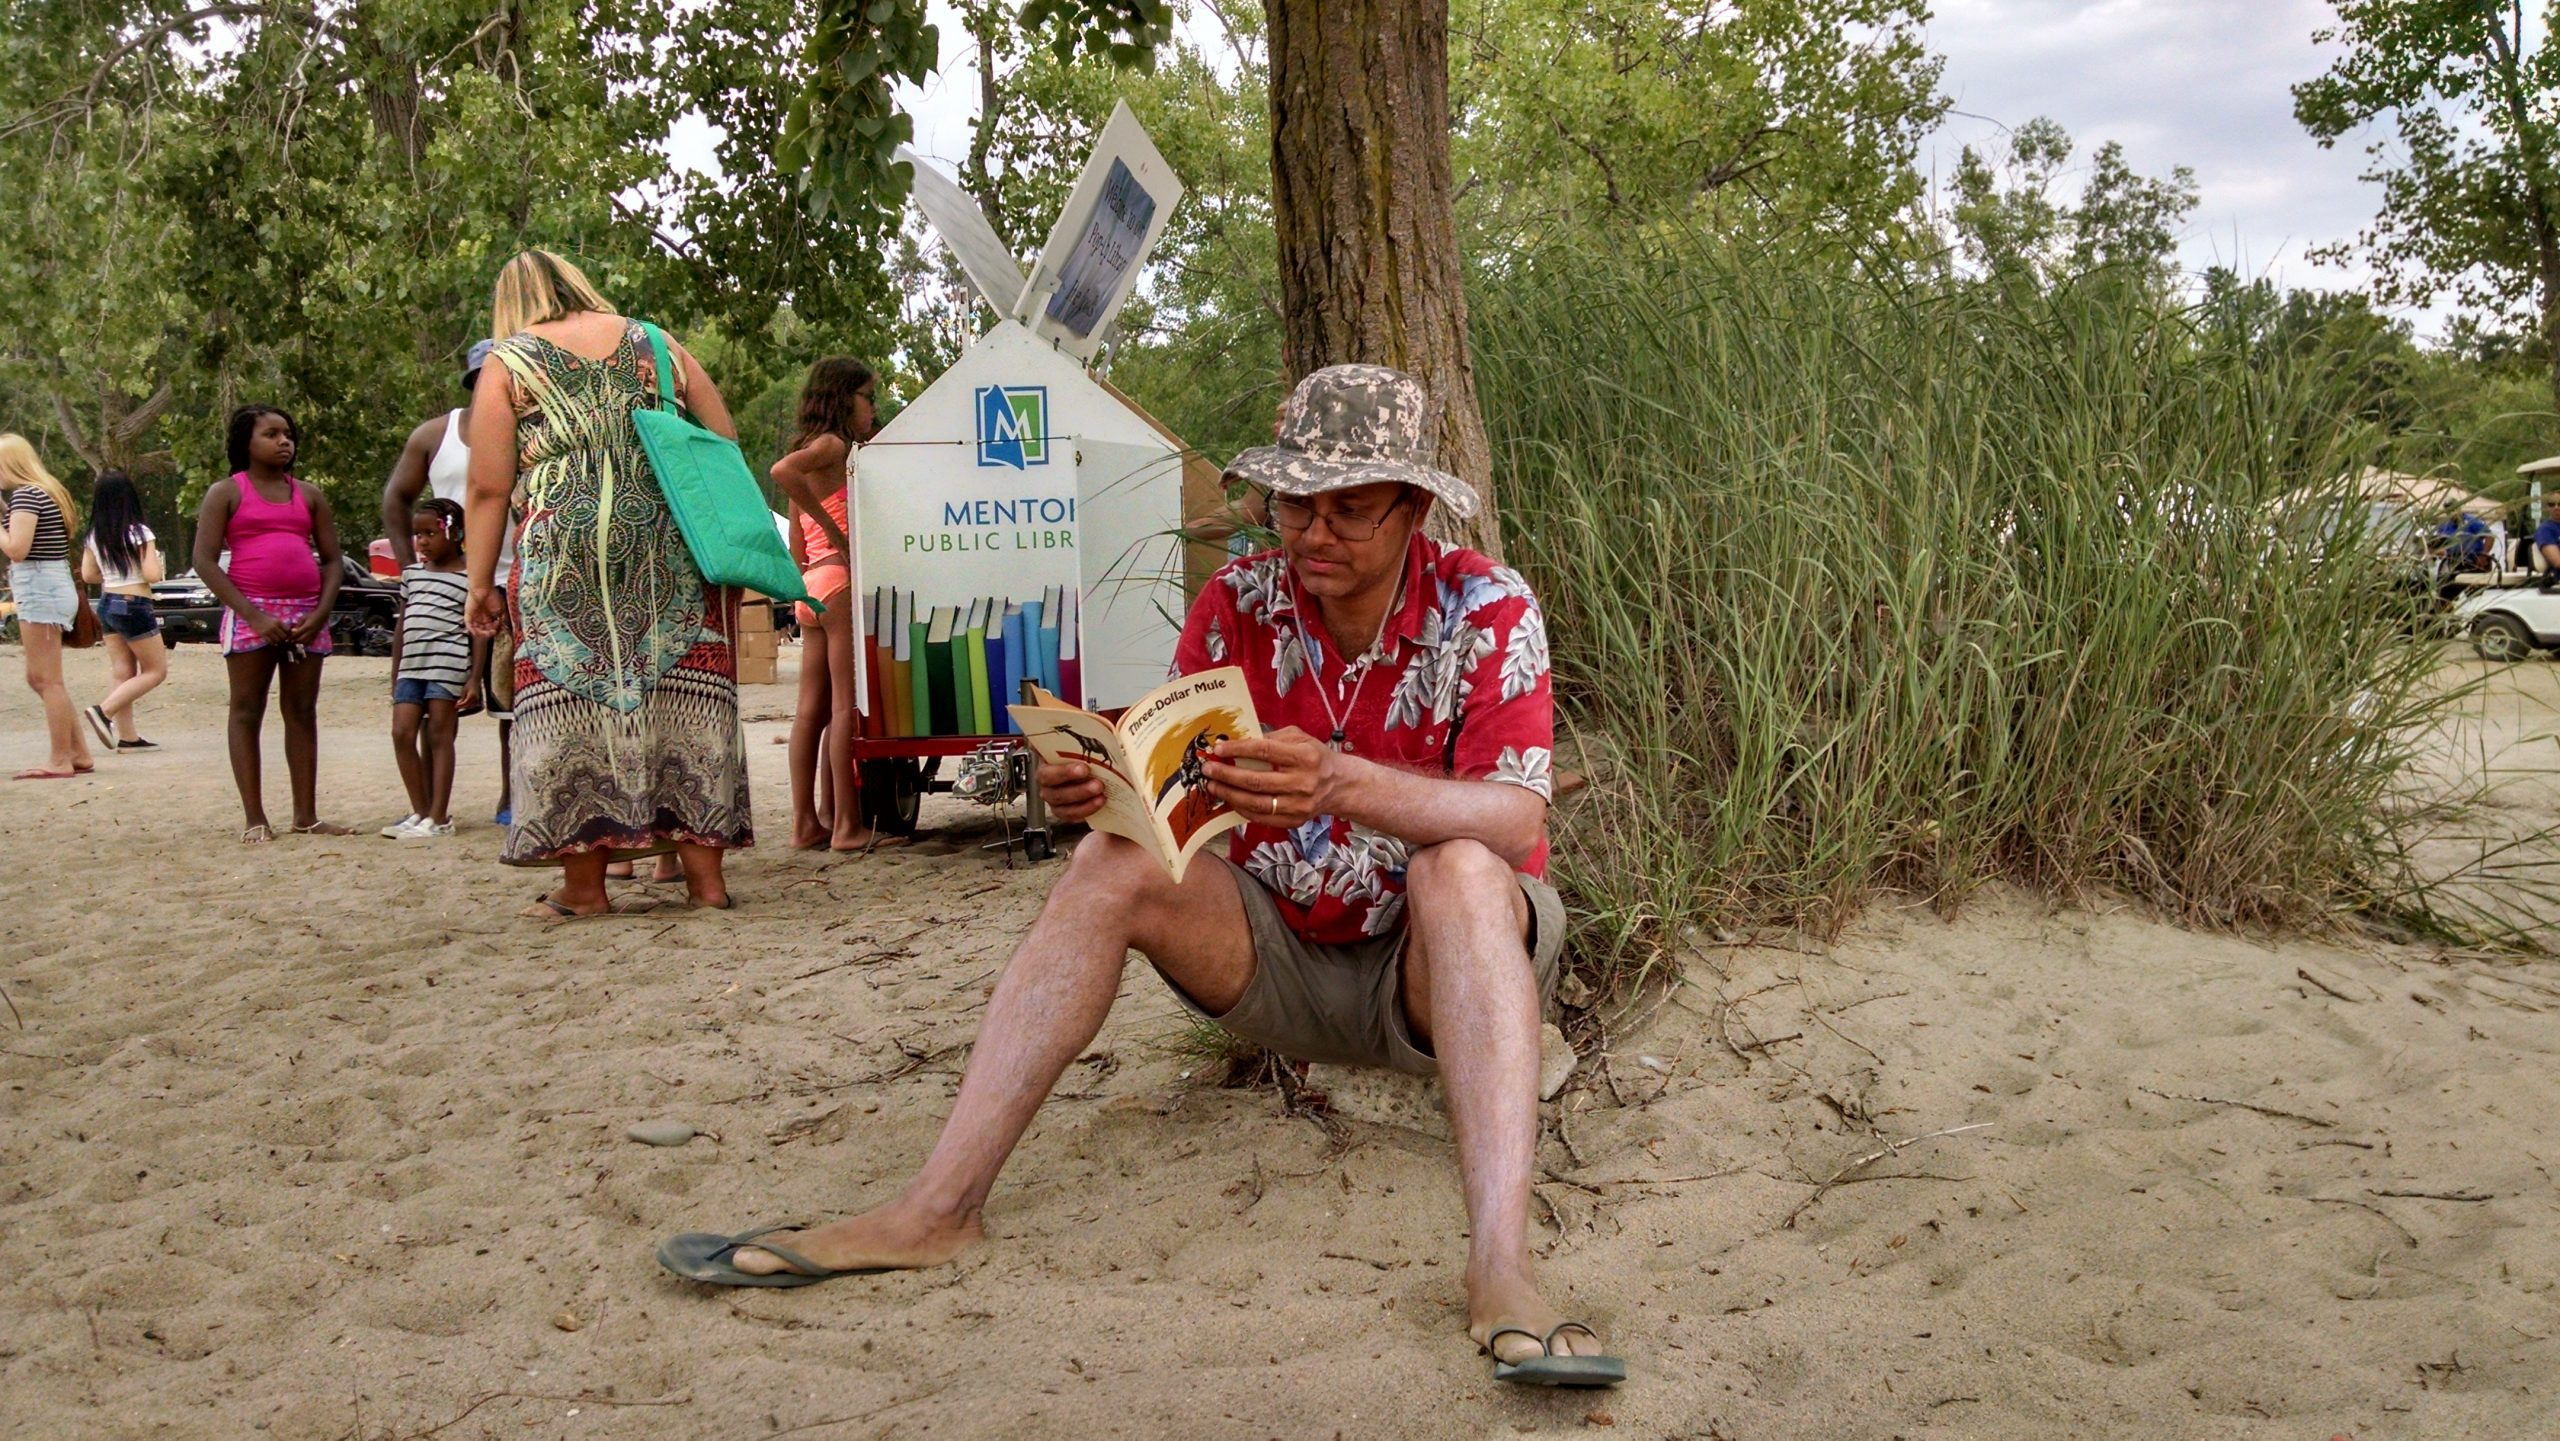 A man reads a book he found on Mentor Public Library's Pop-Up Library during BeachFest at Mentor Headlands Beach.